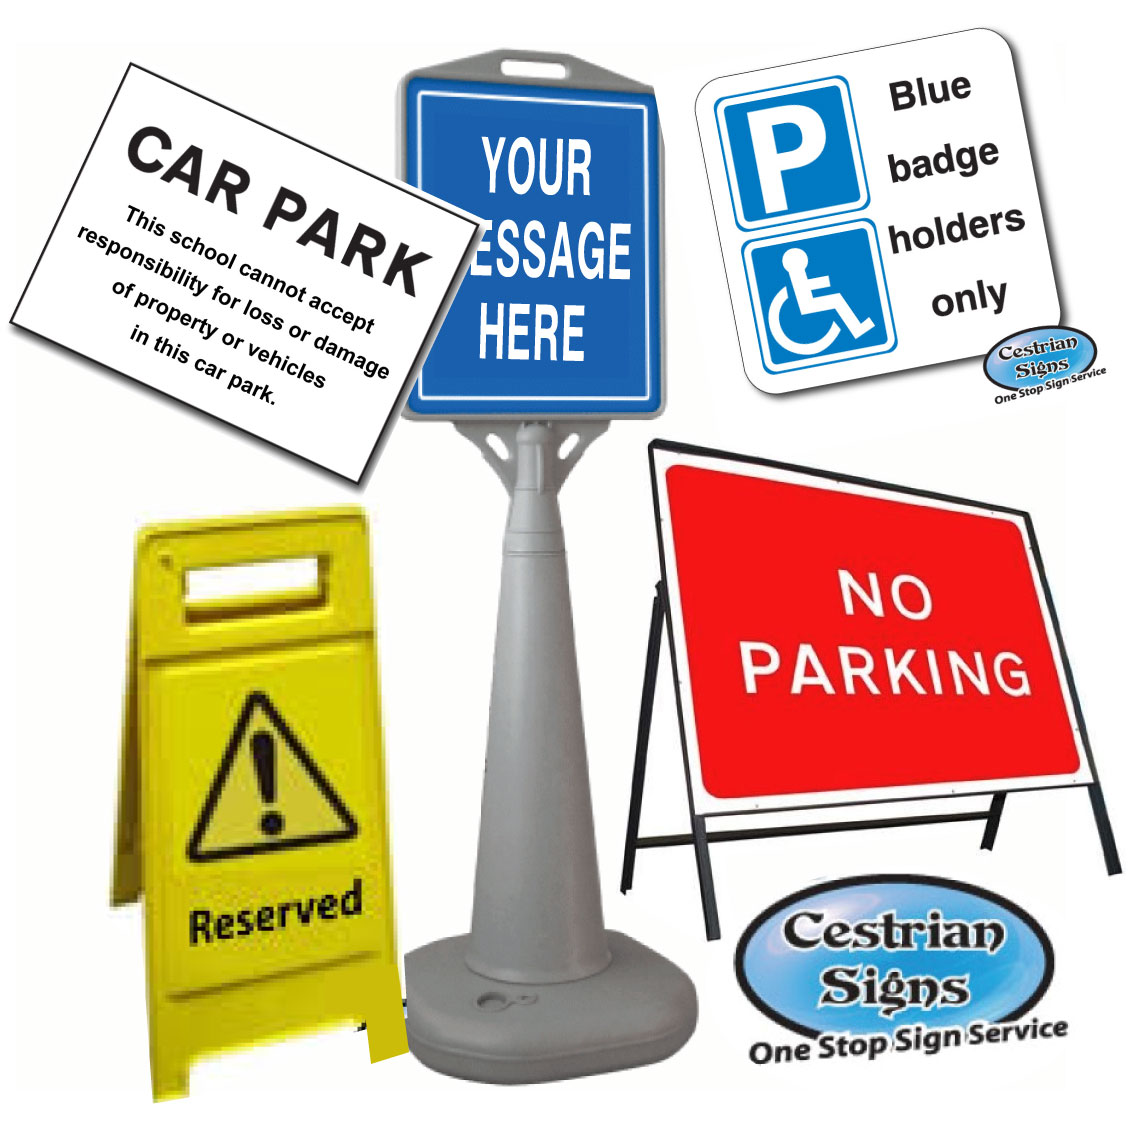 Car Park, Pedestrian and Traffic Signs